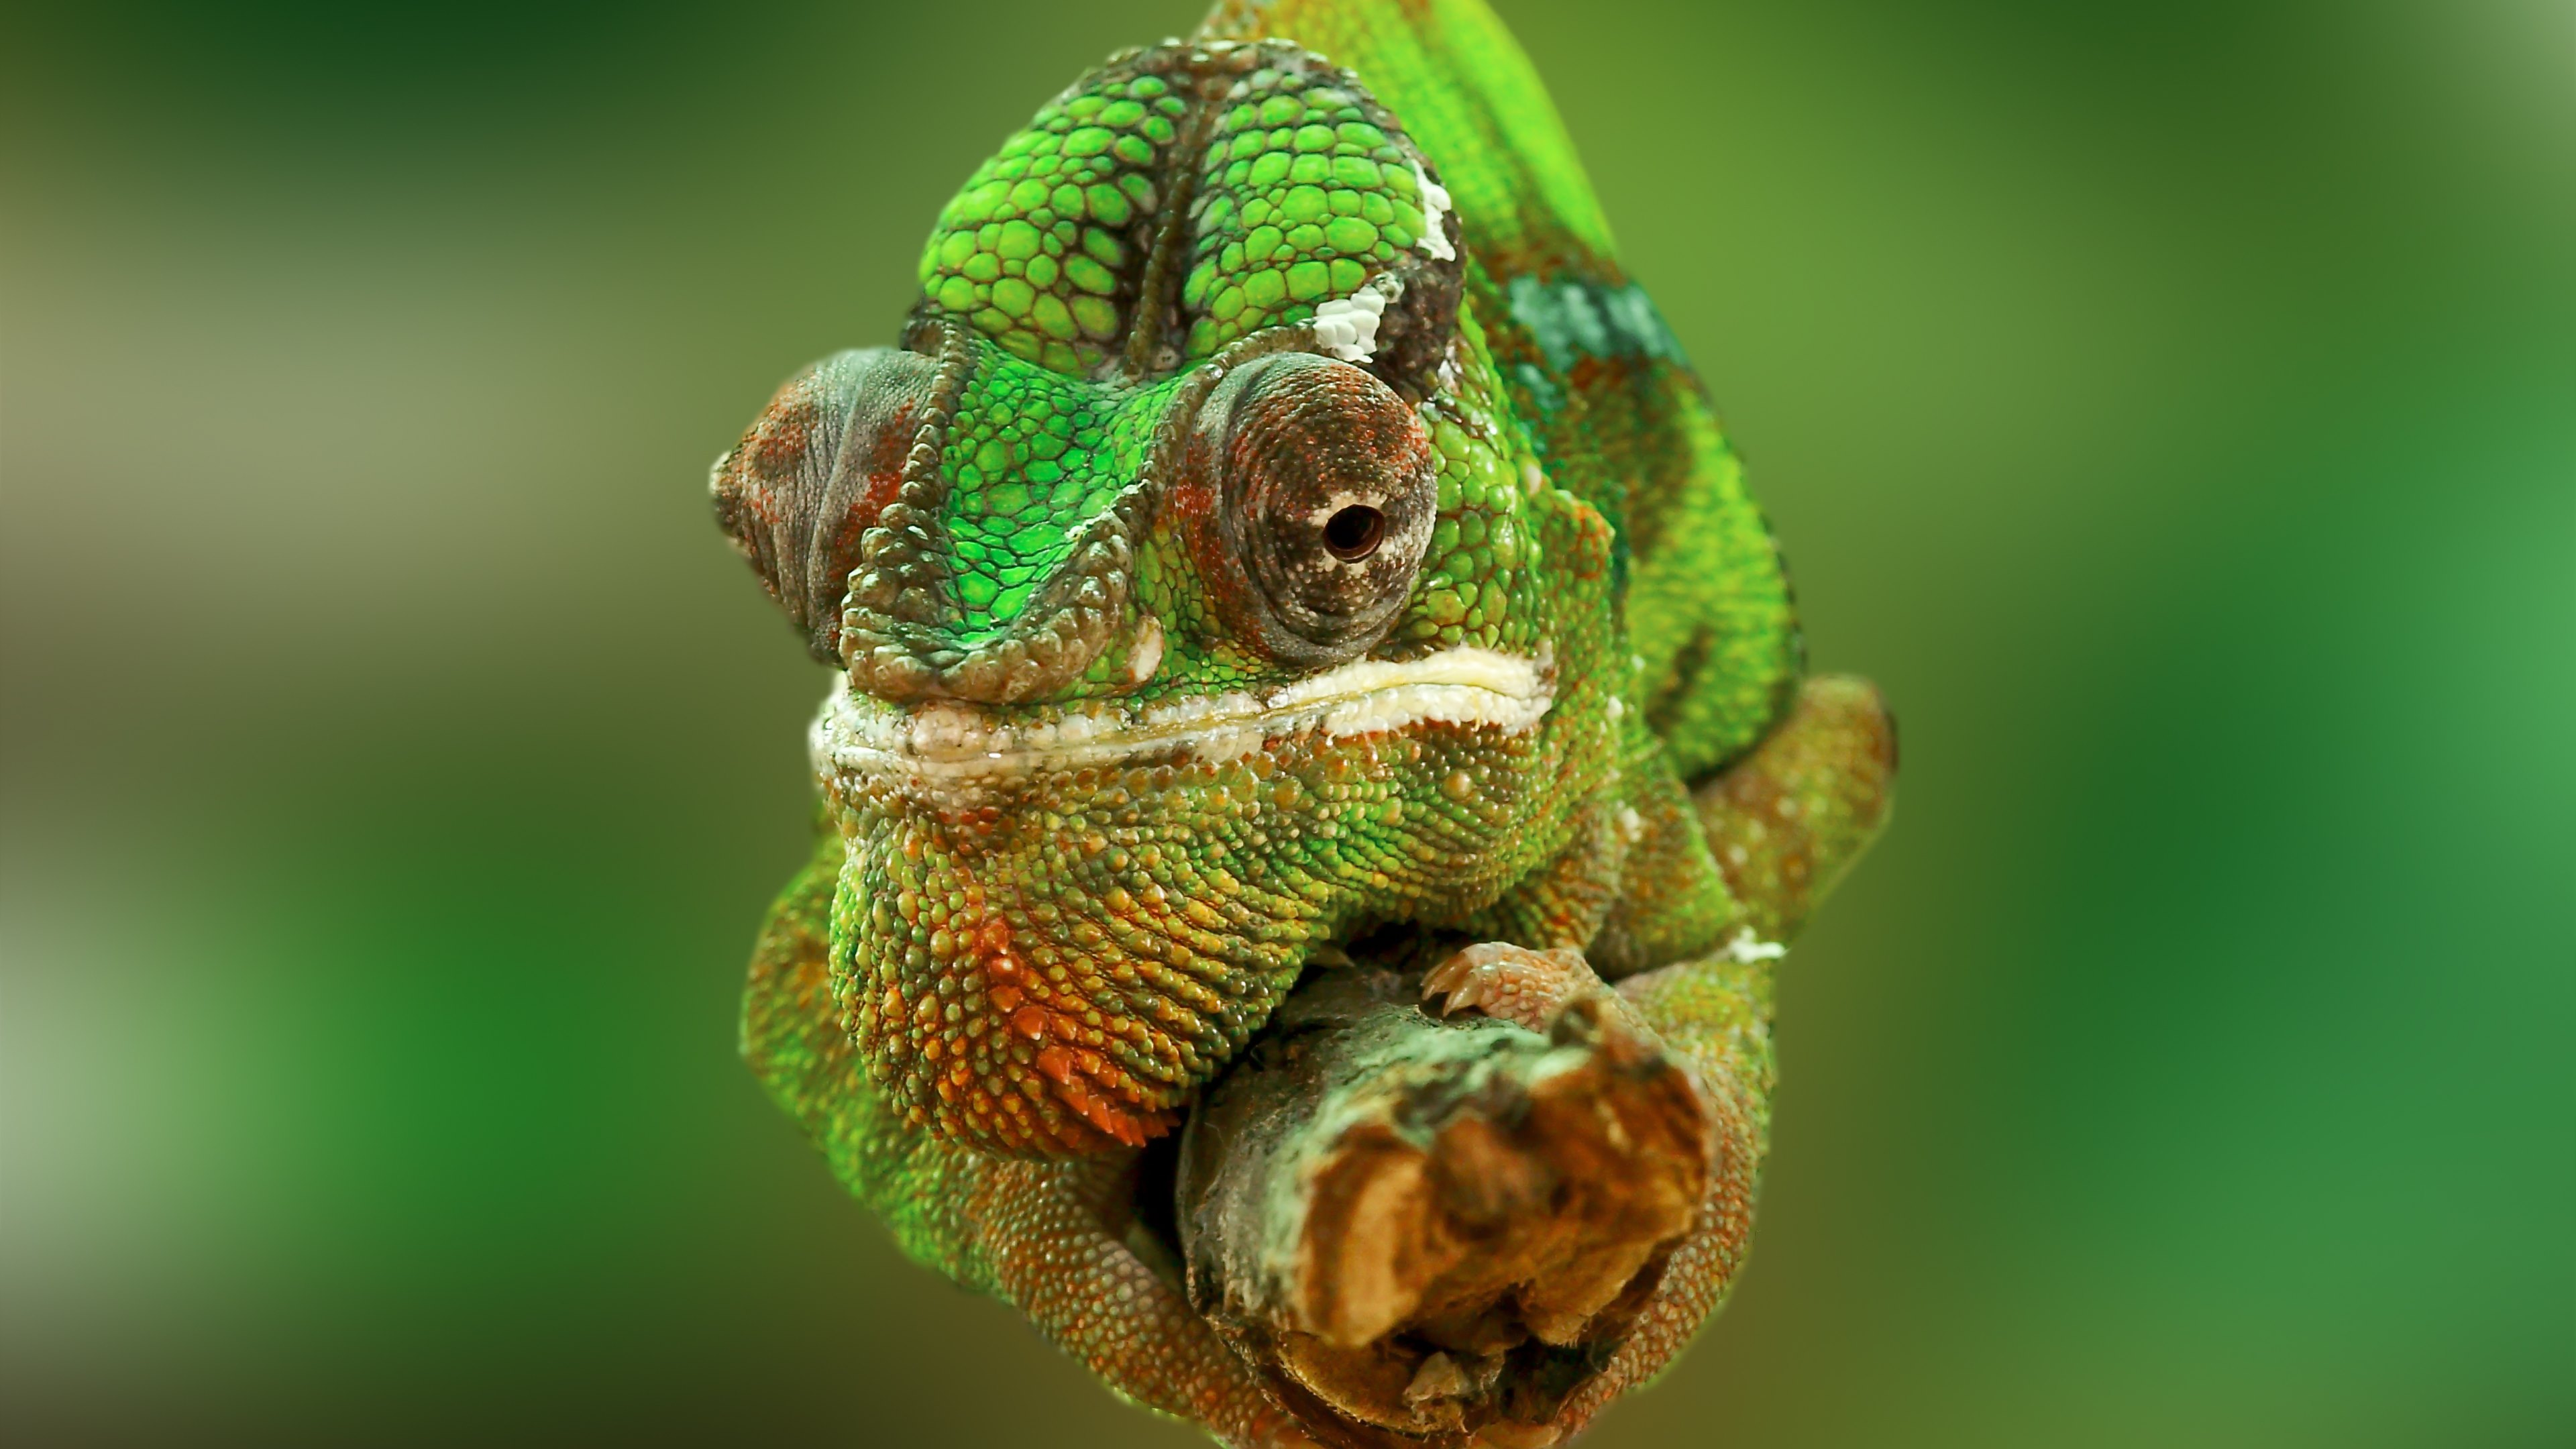 Chameleon, branch, colors, color, green, animal, lizard